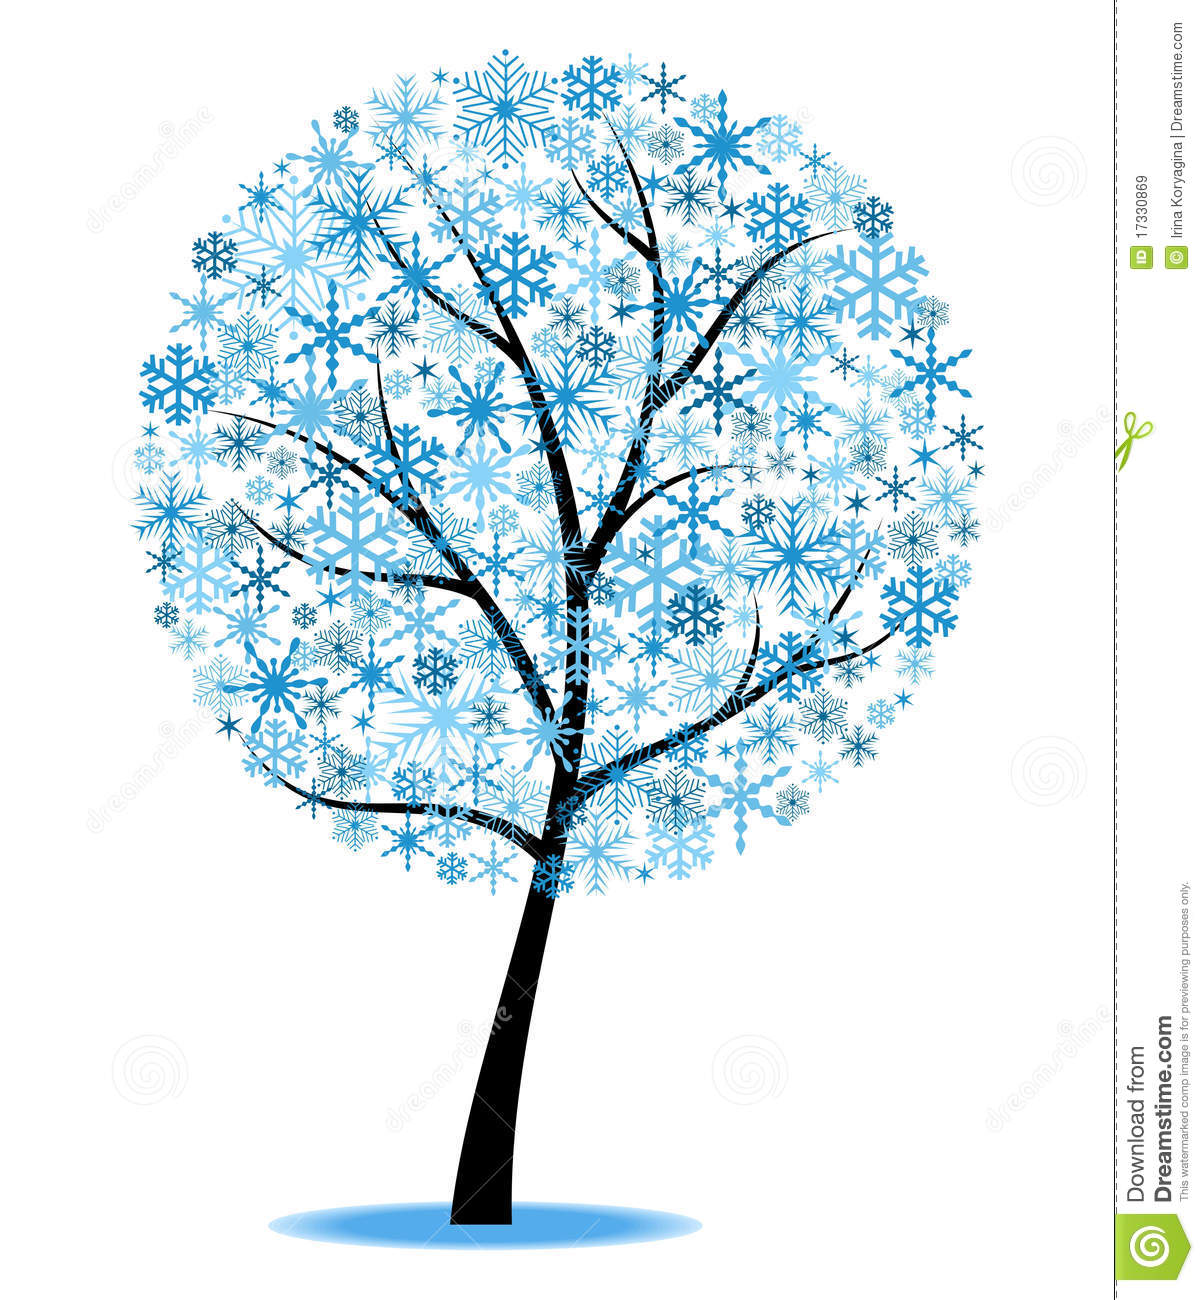 Winter Tree Images Royalty Free Stock Image